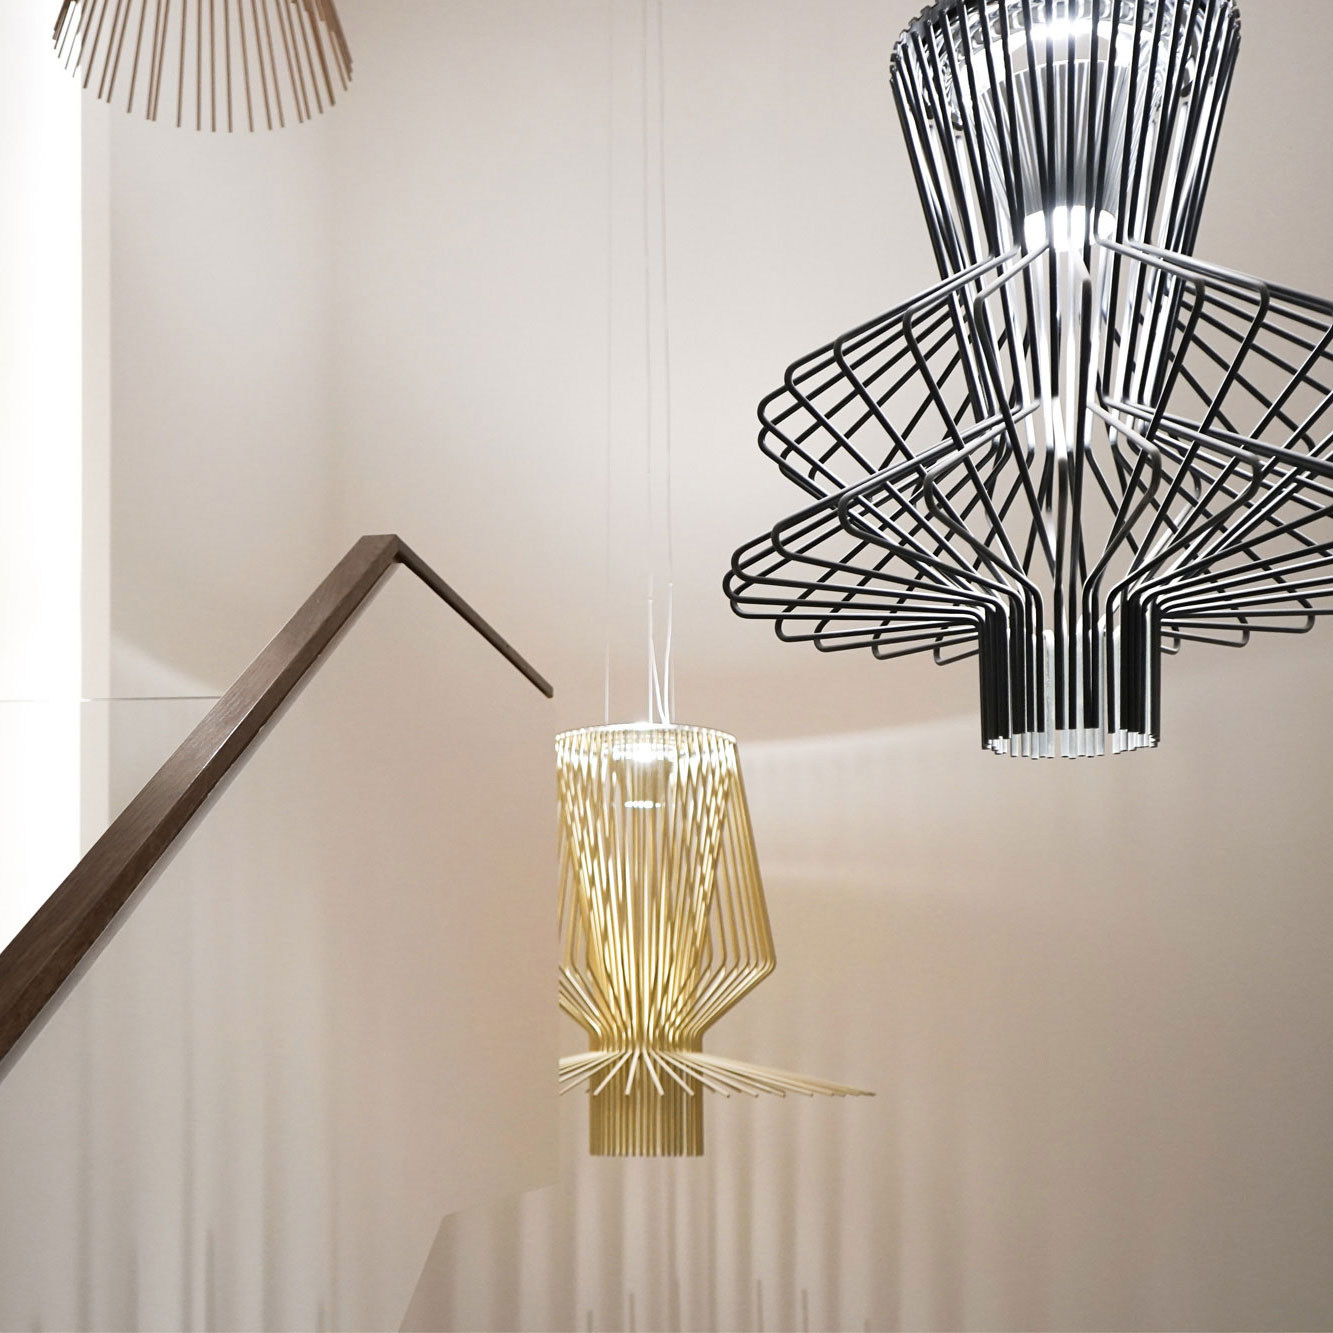 Bourg8_Lampes.jpg